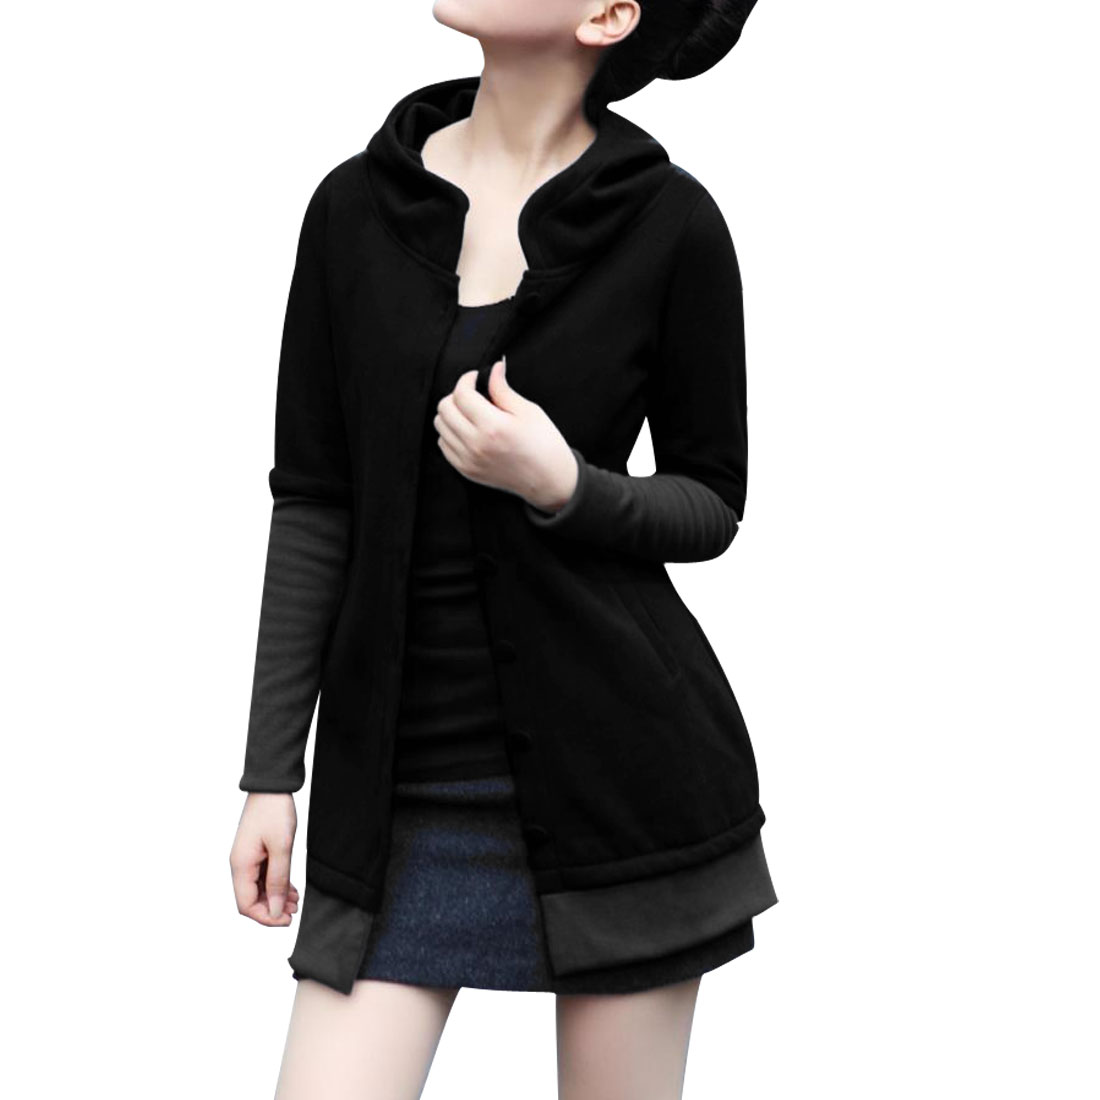 Ladies Black Hooded Long Sleeve Two Tone Leisure Autumn Warm Coat XS